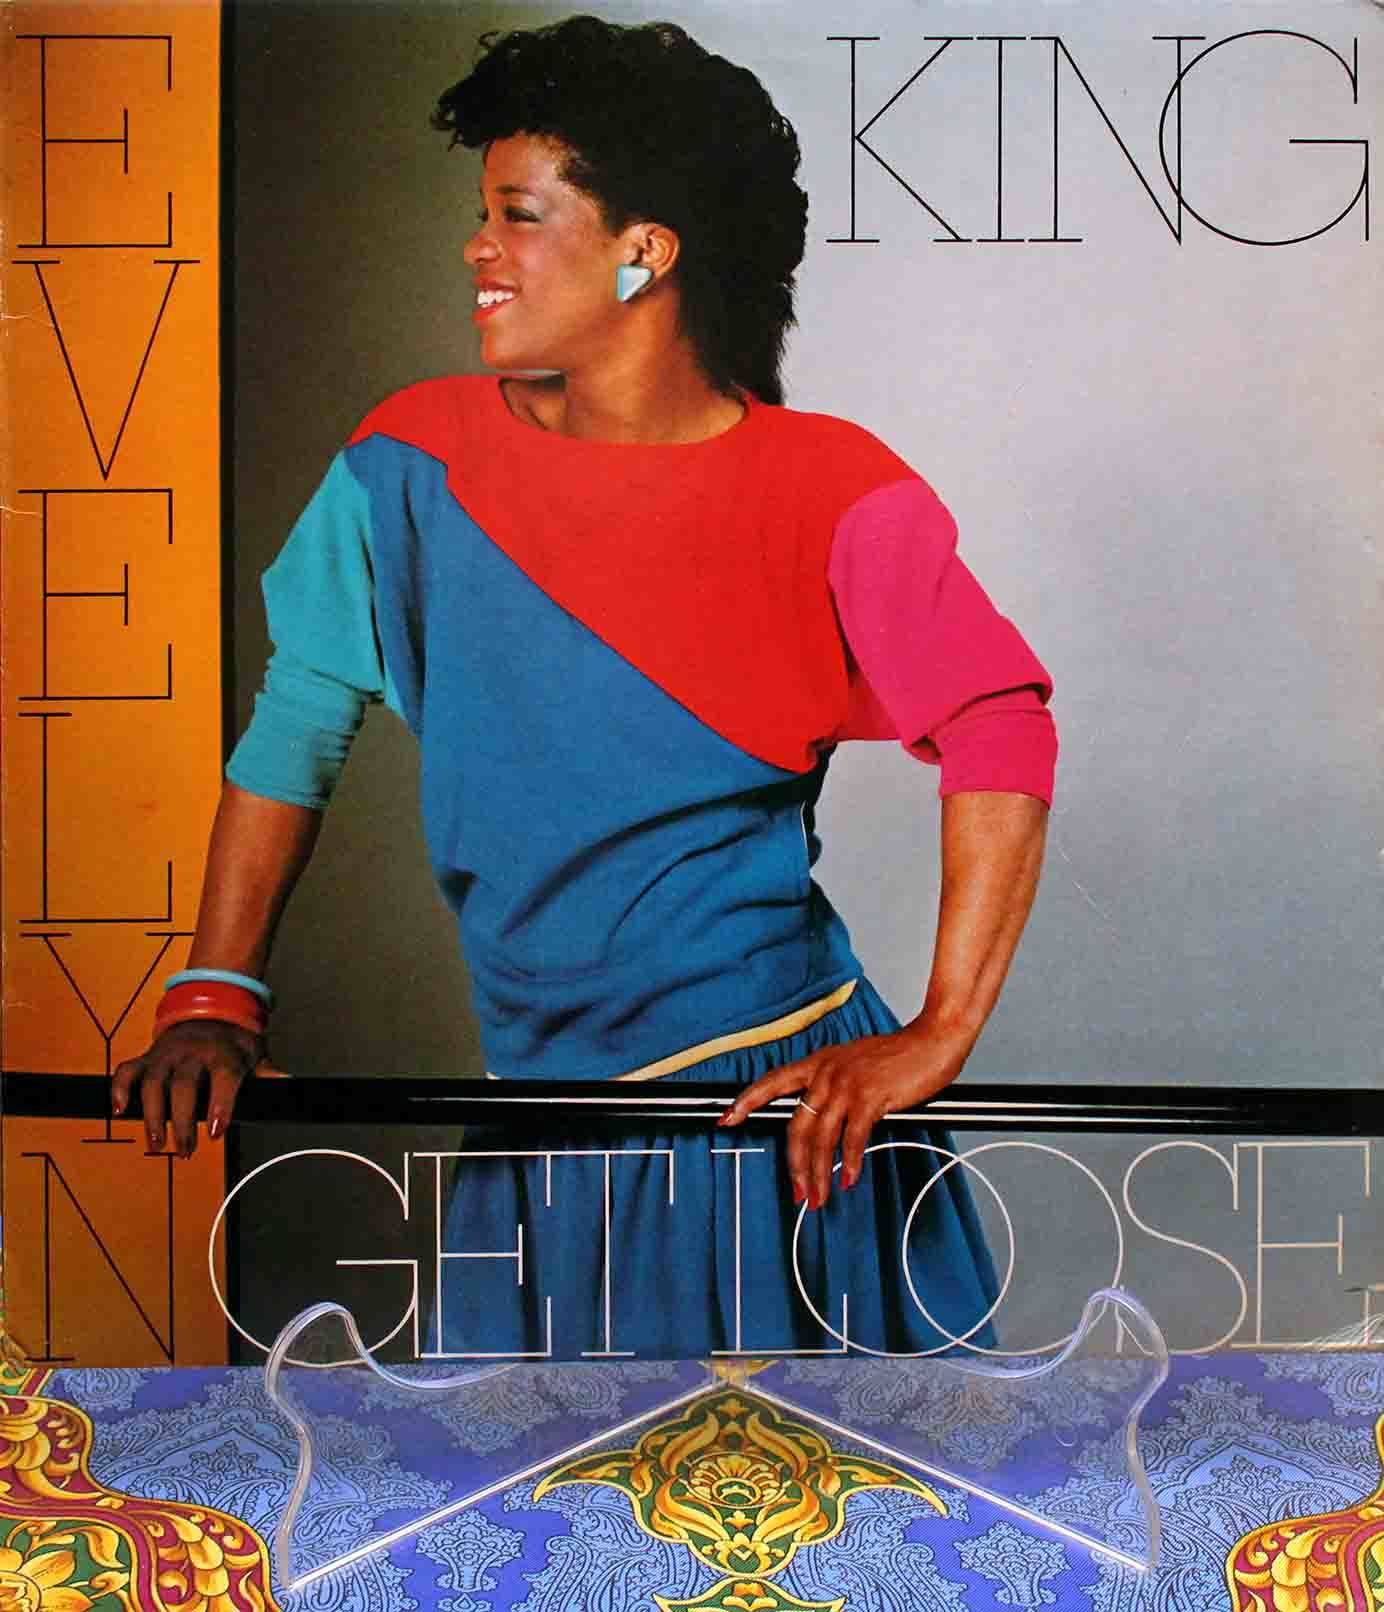 Evelyn King 01